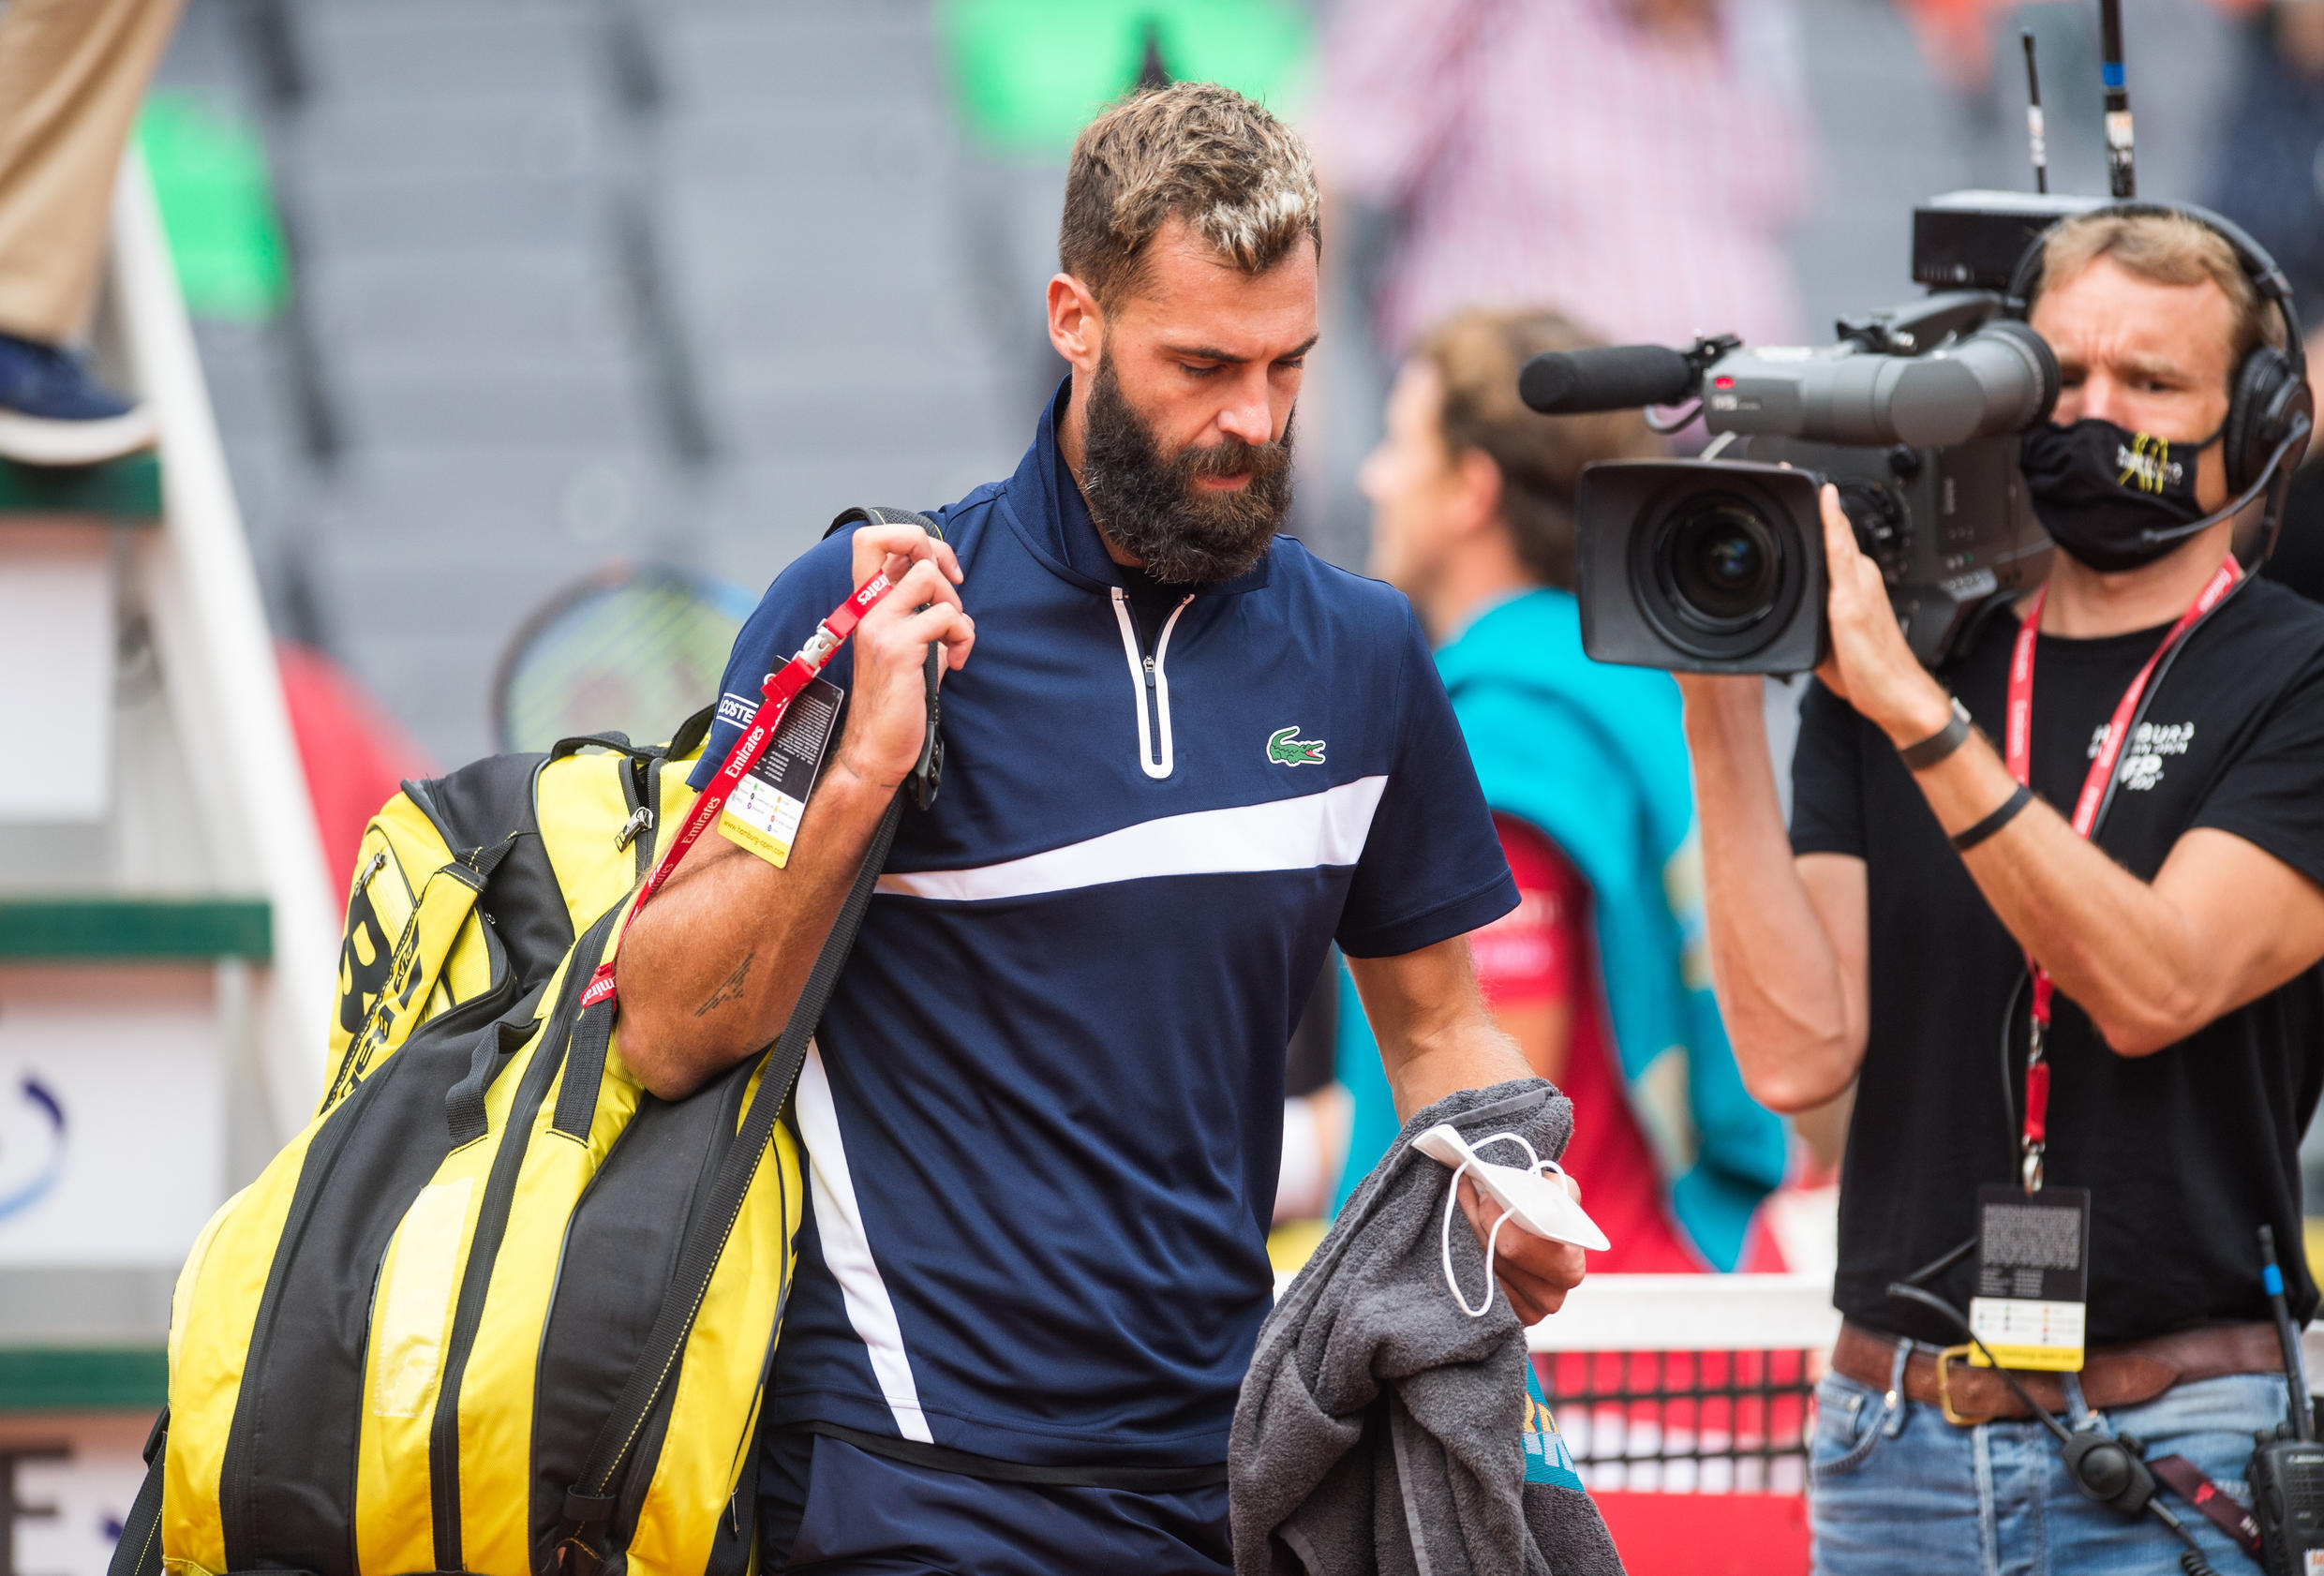 Benoit Paire leaves the court at the ATP tournament in Hamburg after retiring during first-round match against Casper Ruud of Norway (File photo/September 2020)